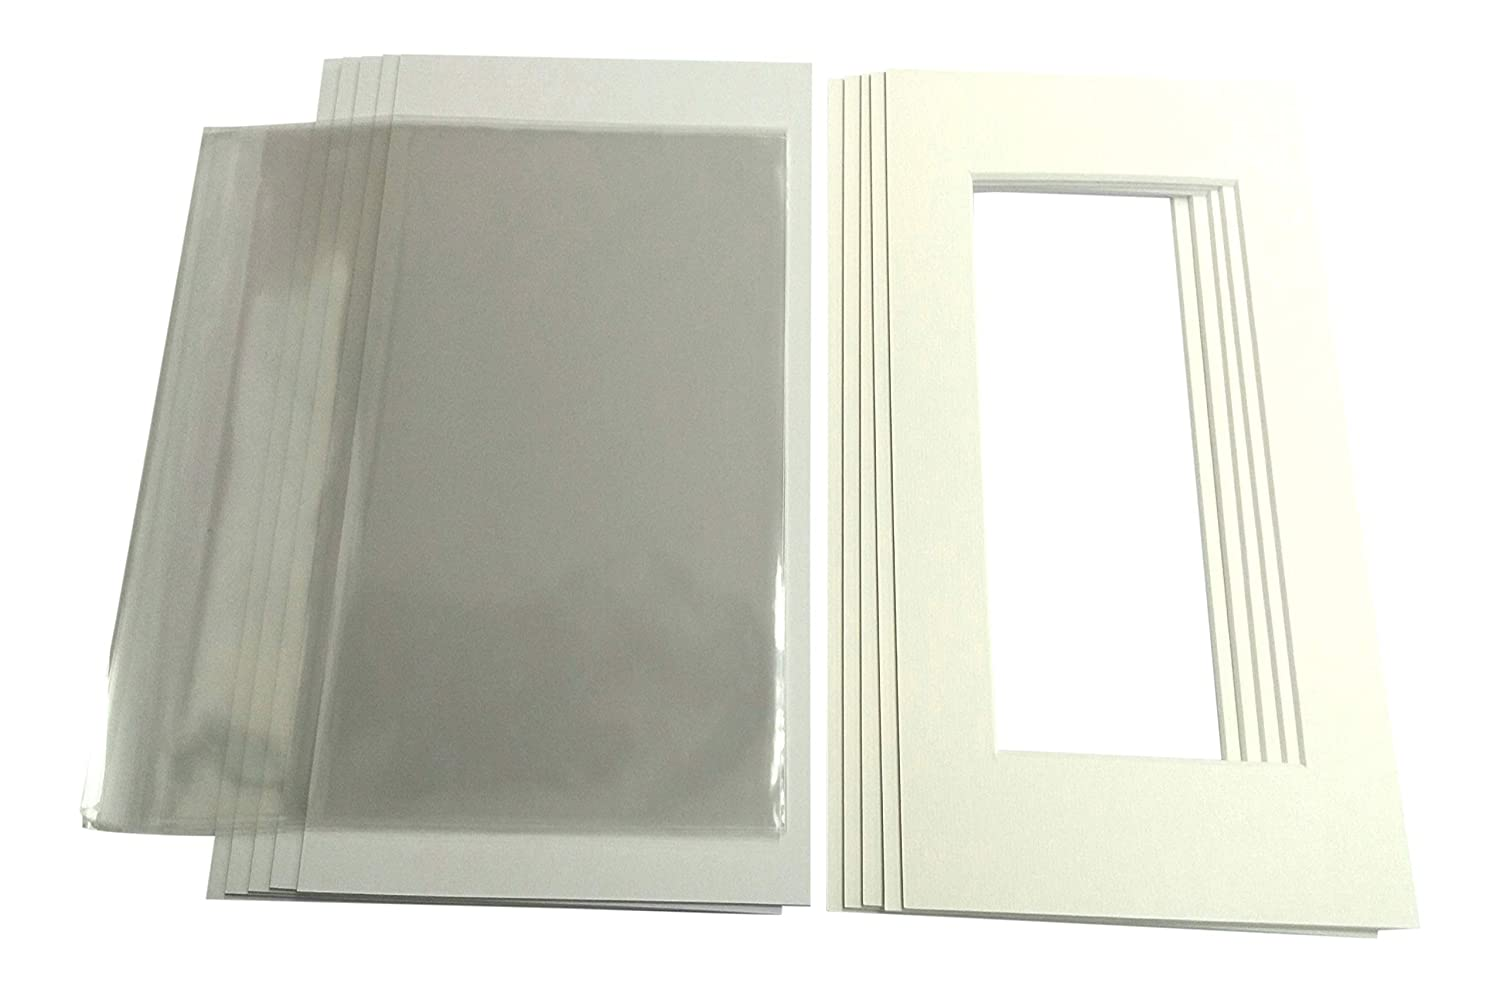 10 x Pack of Picture/Photo Mounts with Backs & Clear Bags - 14 x 11